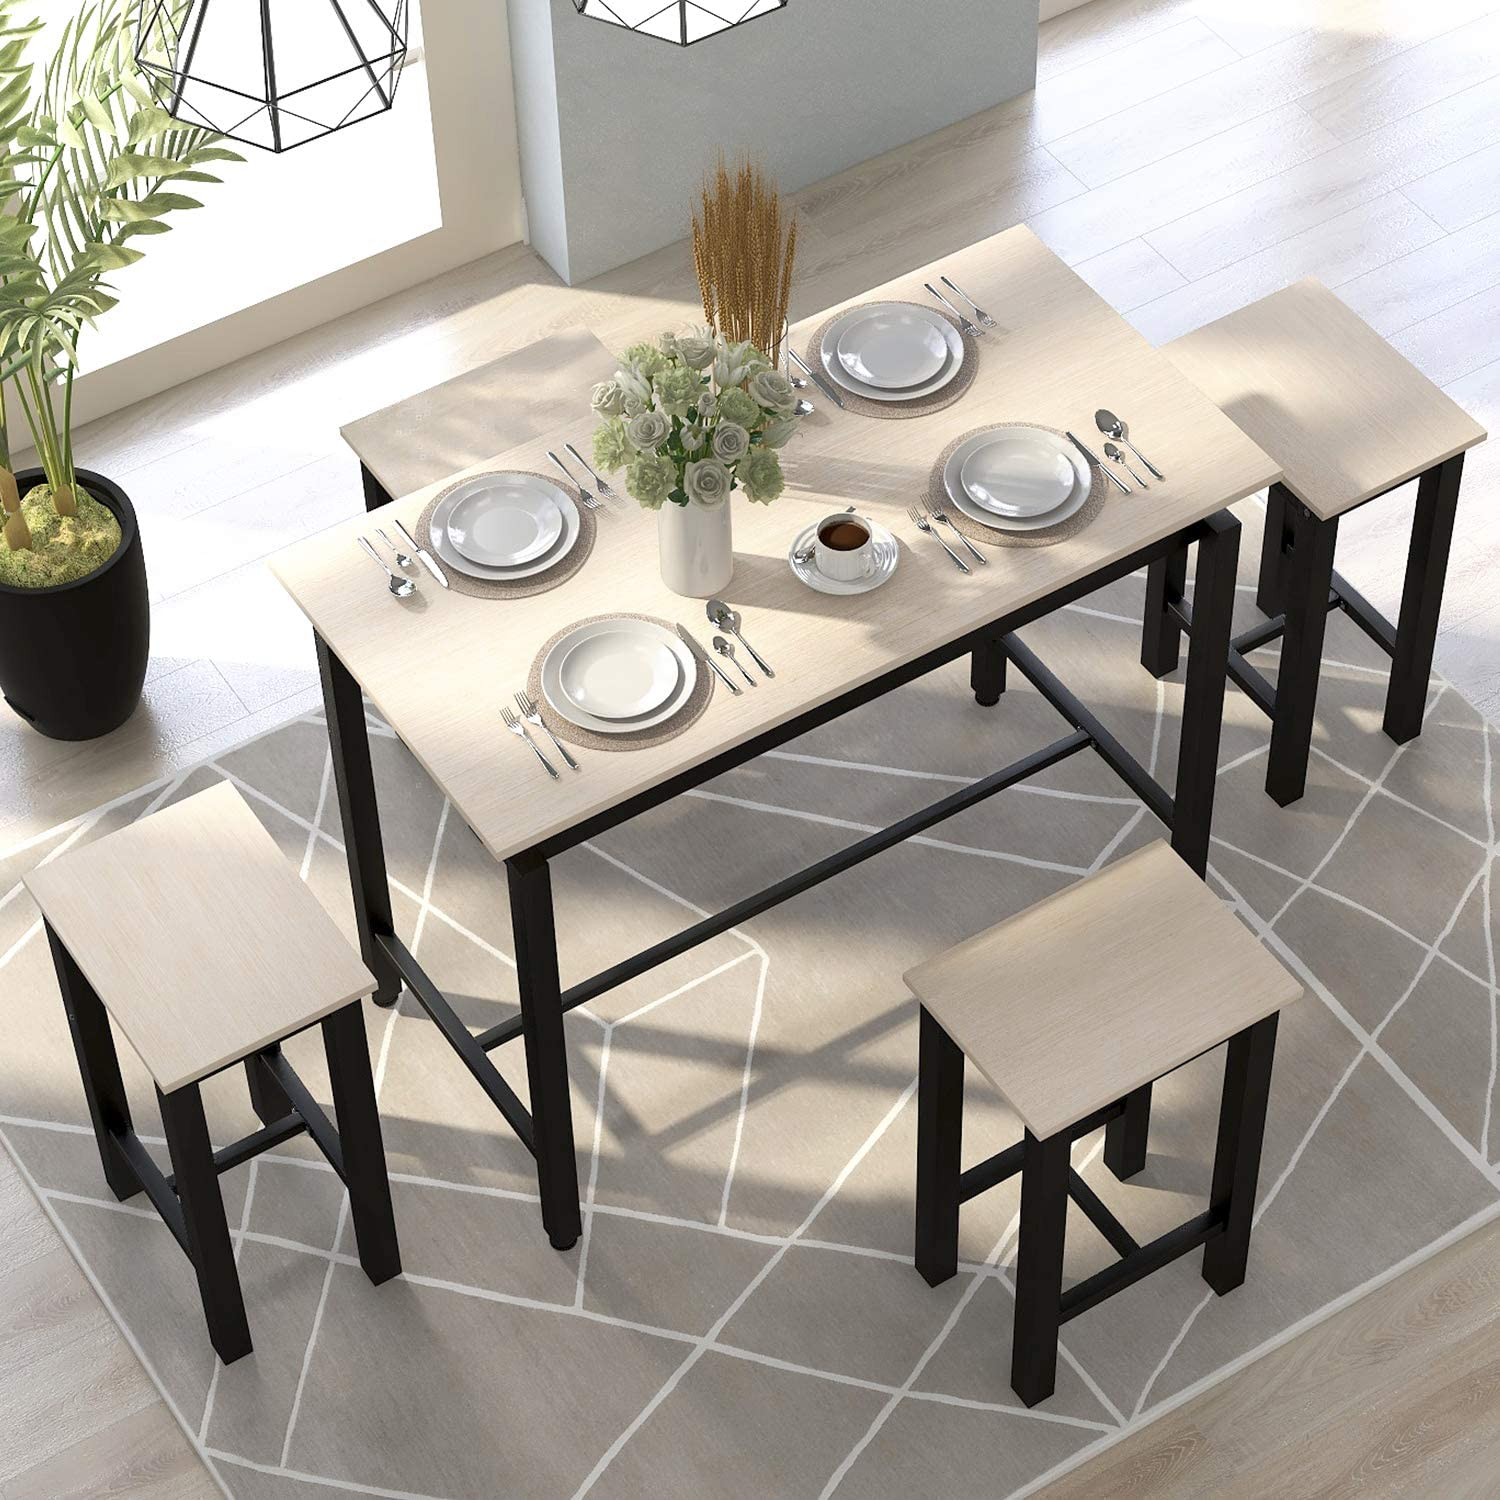 Dining Table Set, Hinpia 5 Piece Practical Dining Room Table Set with 4 Chairs, Counter and Pub Height, Perfect for Breakfast Nook, Kitchen Room, Mini Bar or Patio Beige